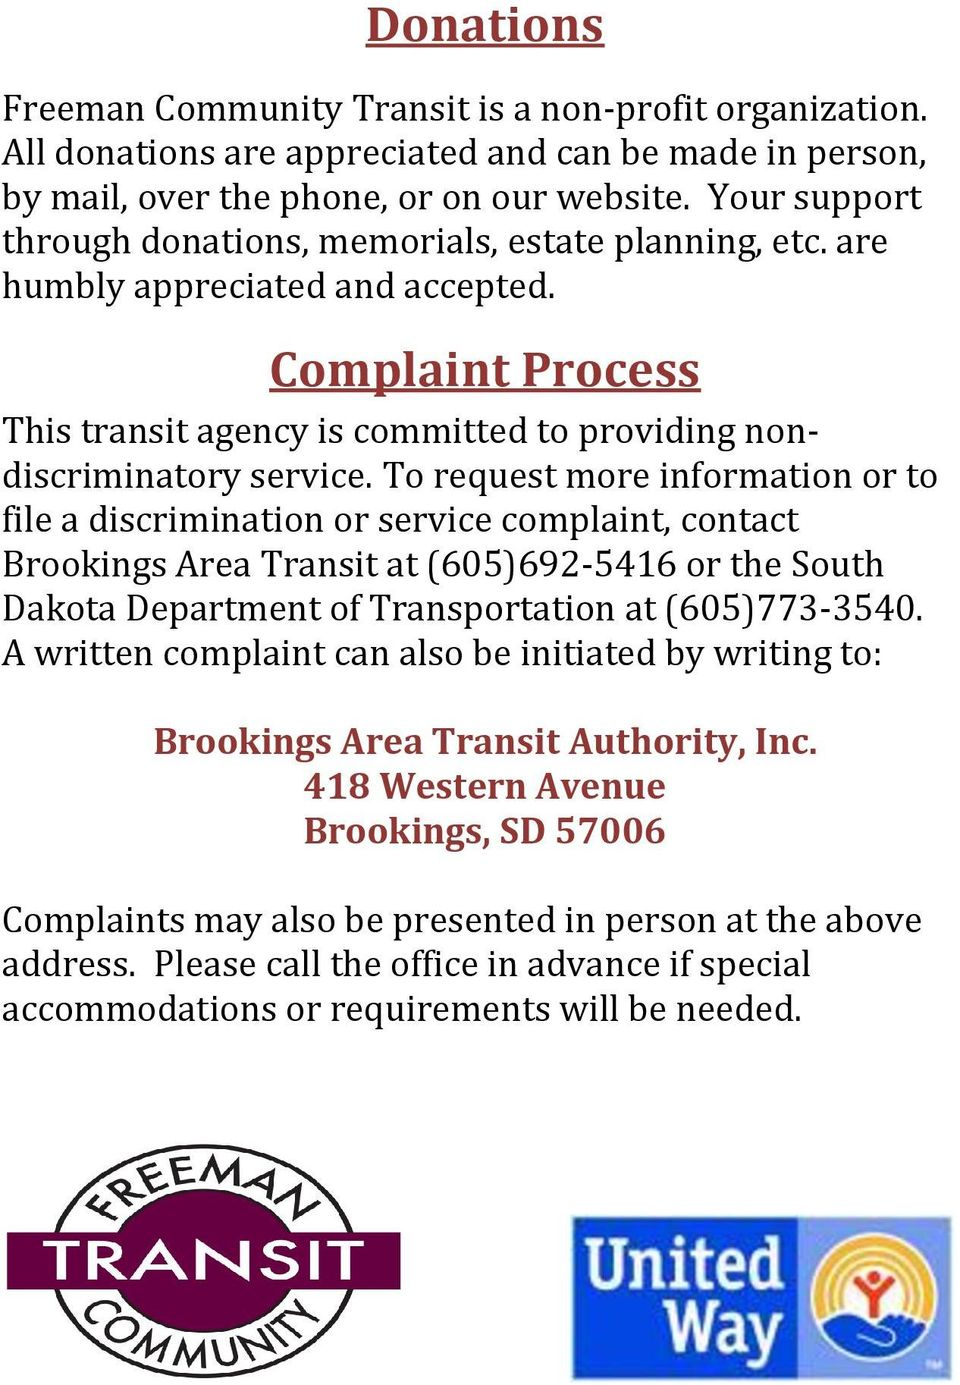 To request more information or to file a discrimination or service complaint, contact Brookings Area Transit at (605)692-5416 or the South Dakota Department of Transportation at (605)773-3540.